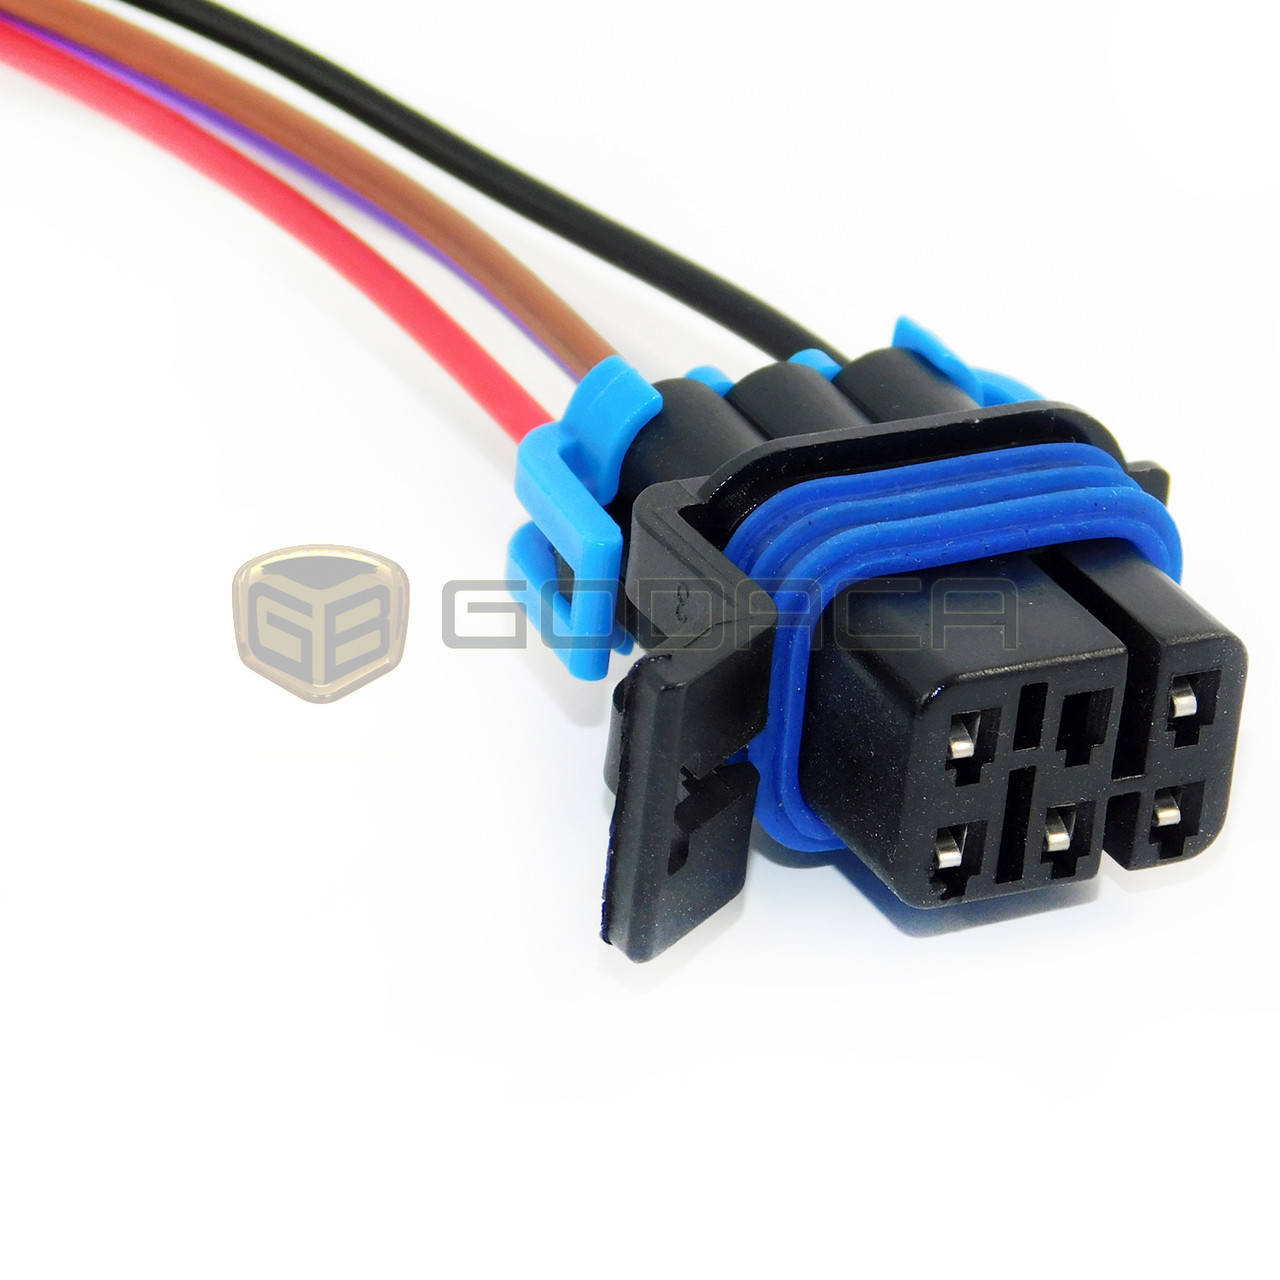 small resolution of connector fuel pump sensor harness pigtail fpw4 gmc buick pontiac chevrolet godaca llc